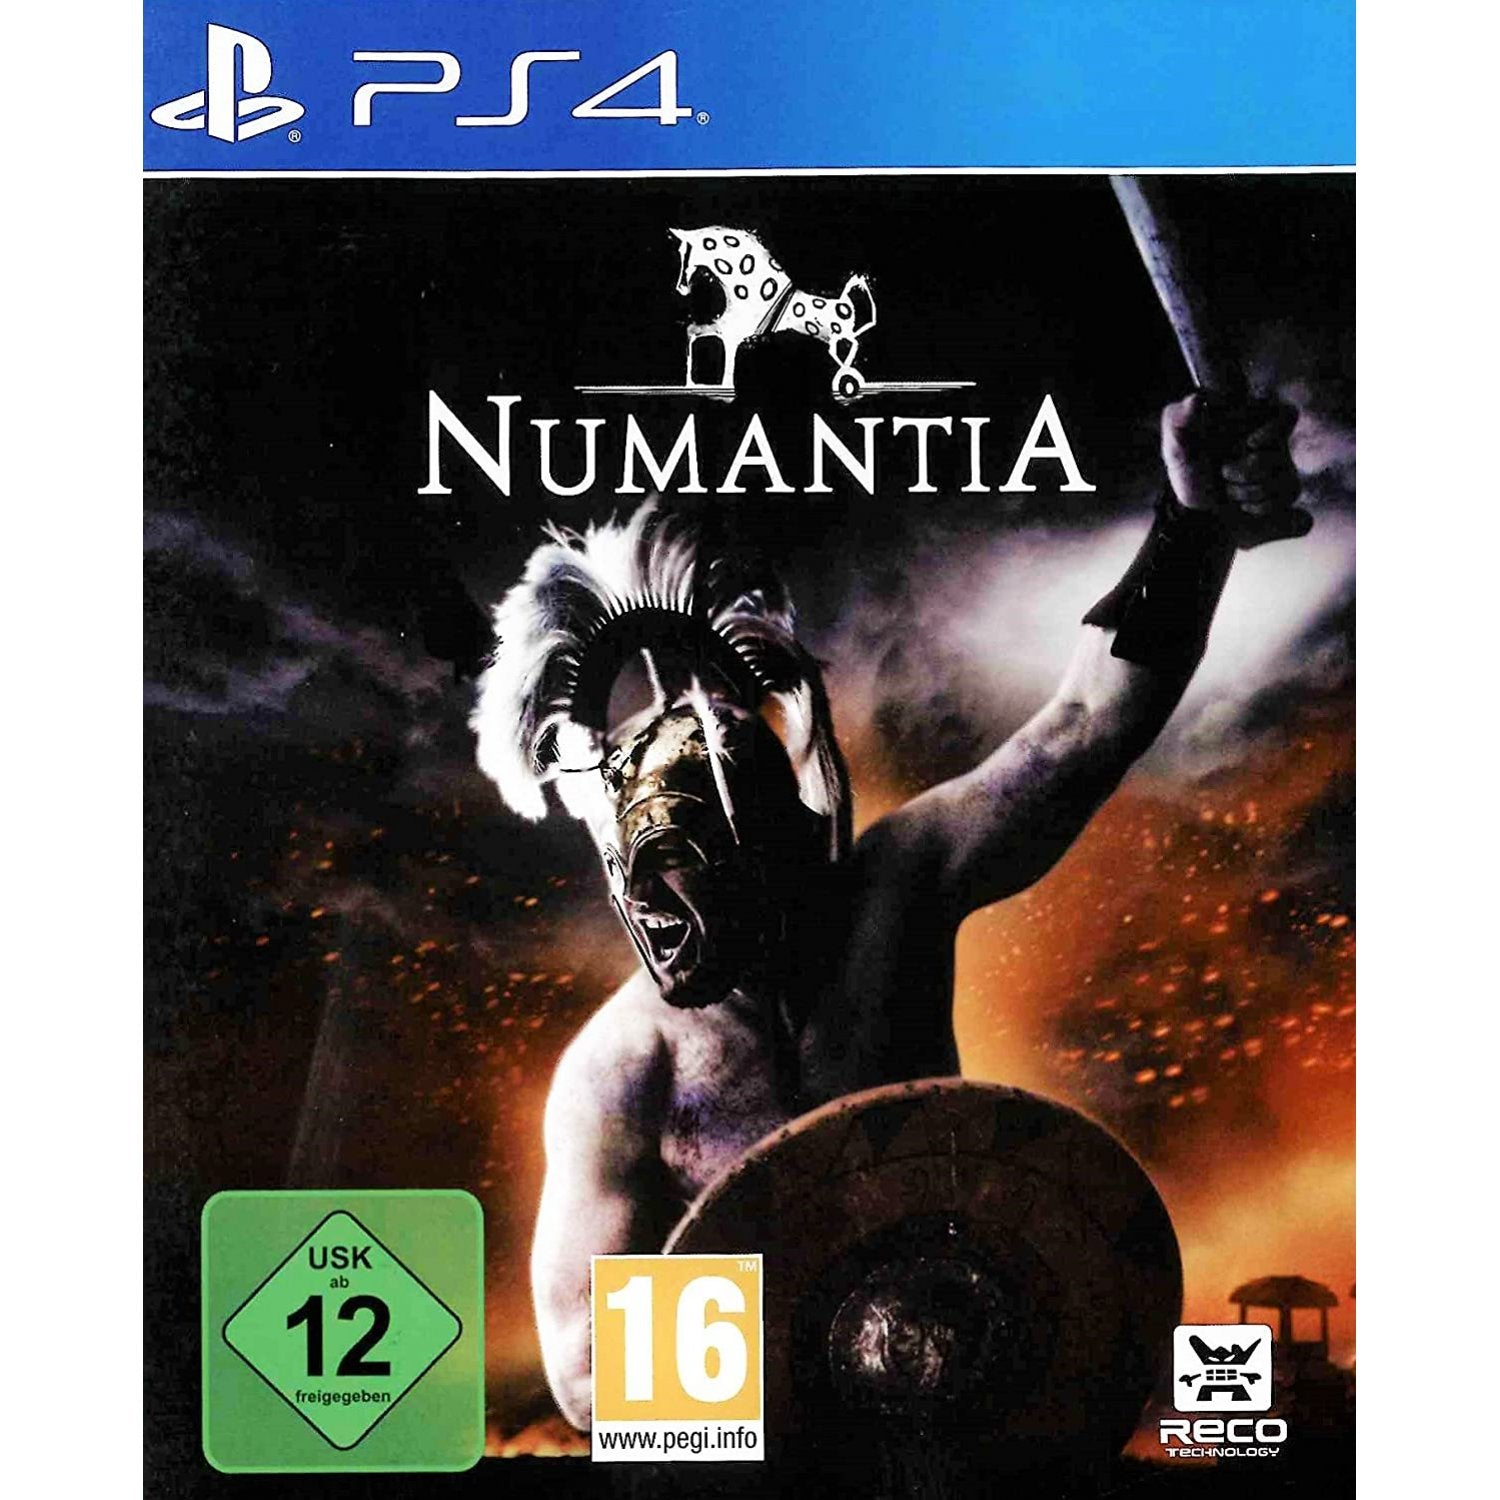 PS4 Numantia